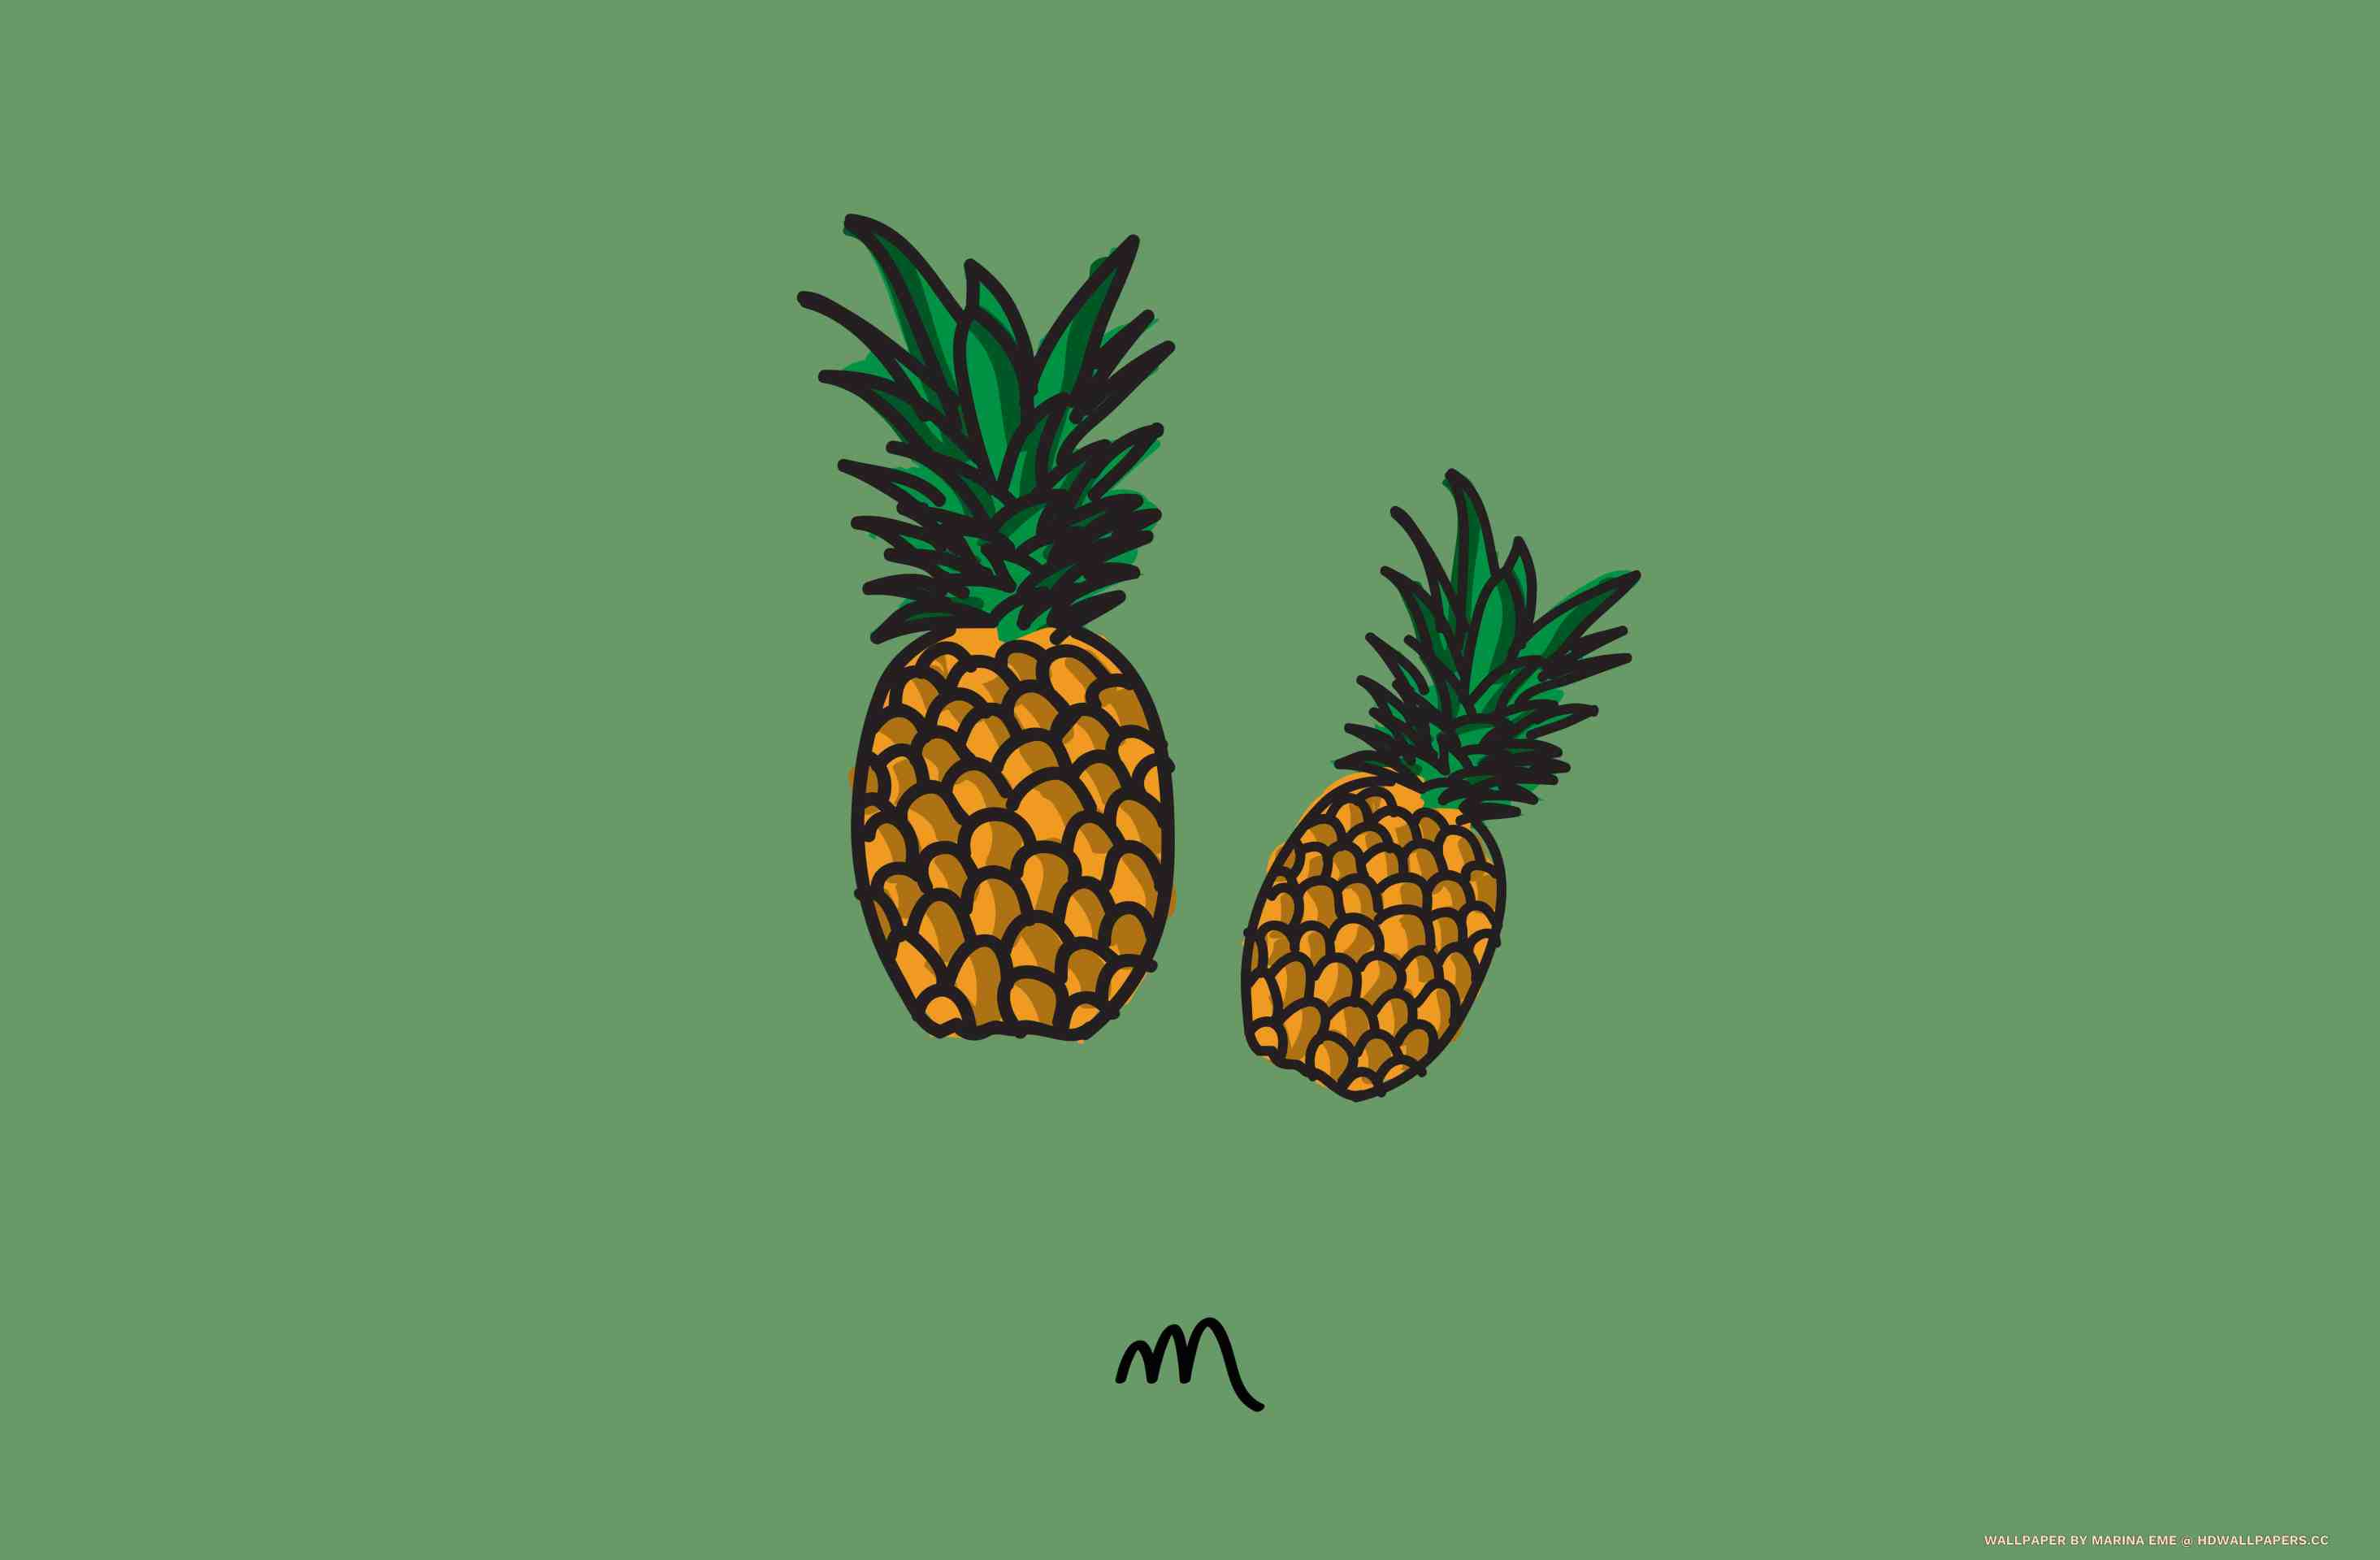 Wallpaper iphone pineapple - Iphone 6 6s